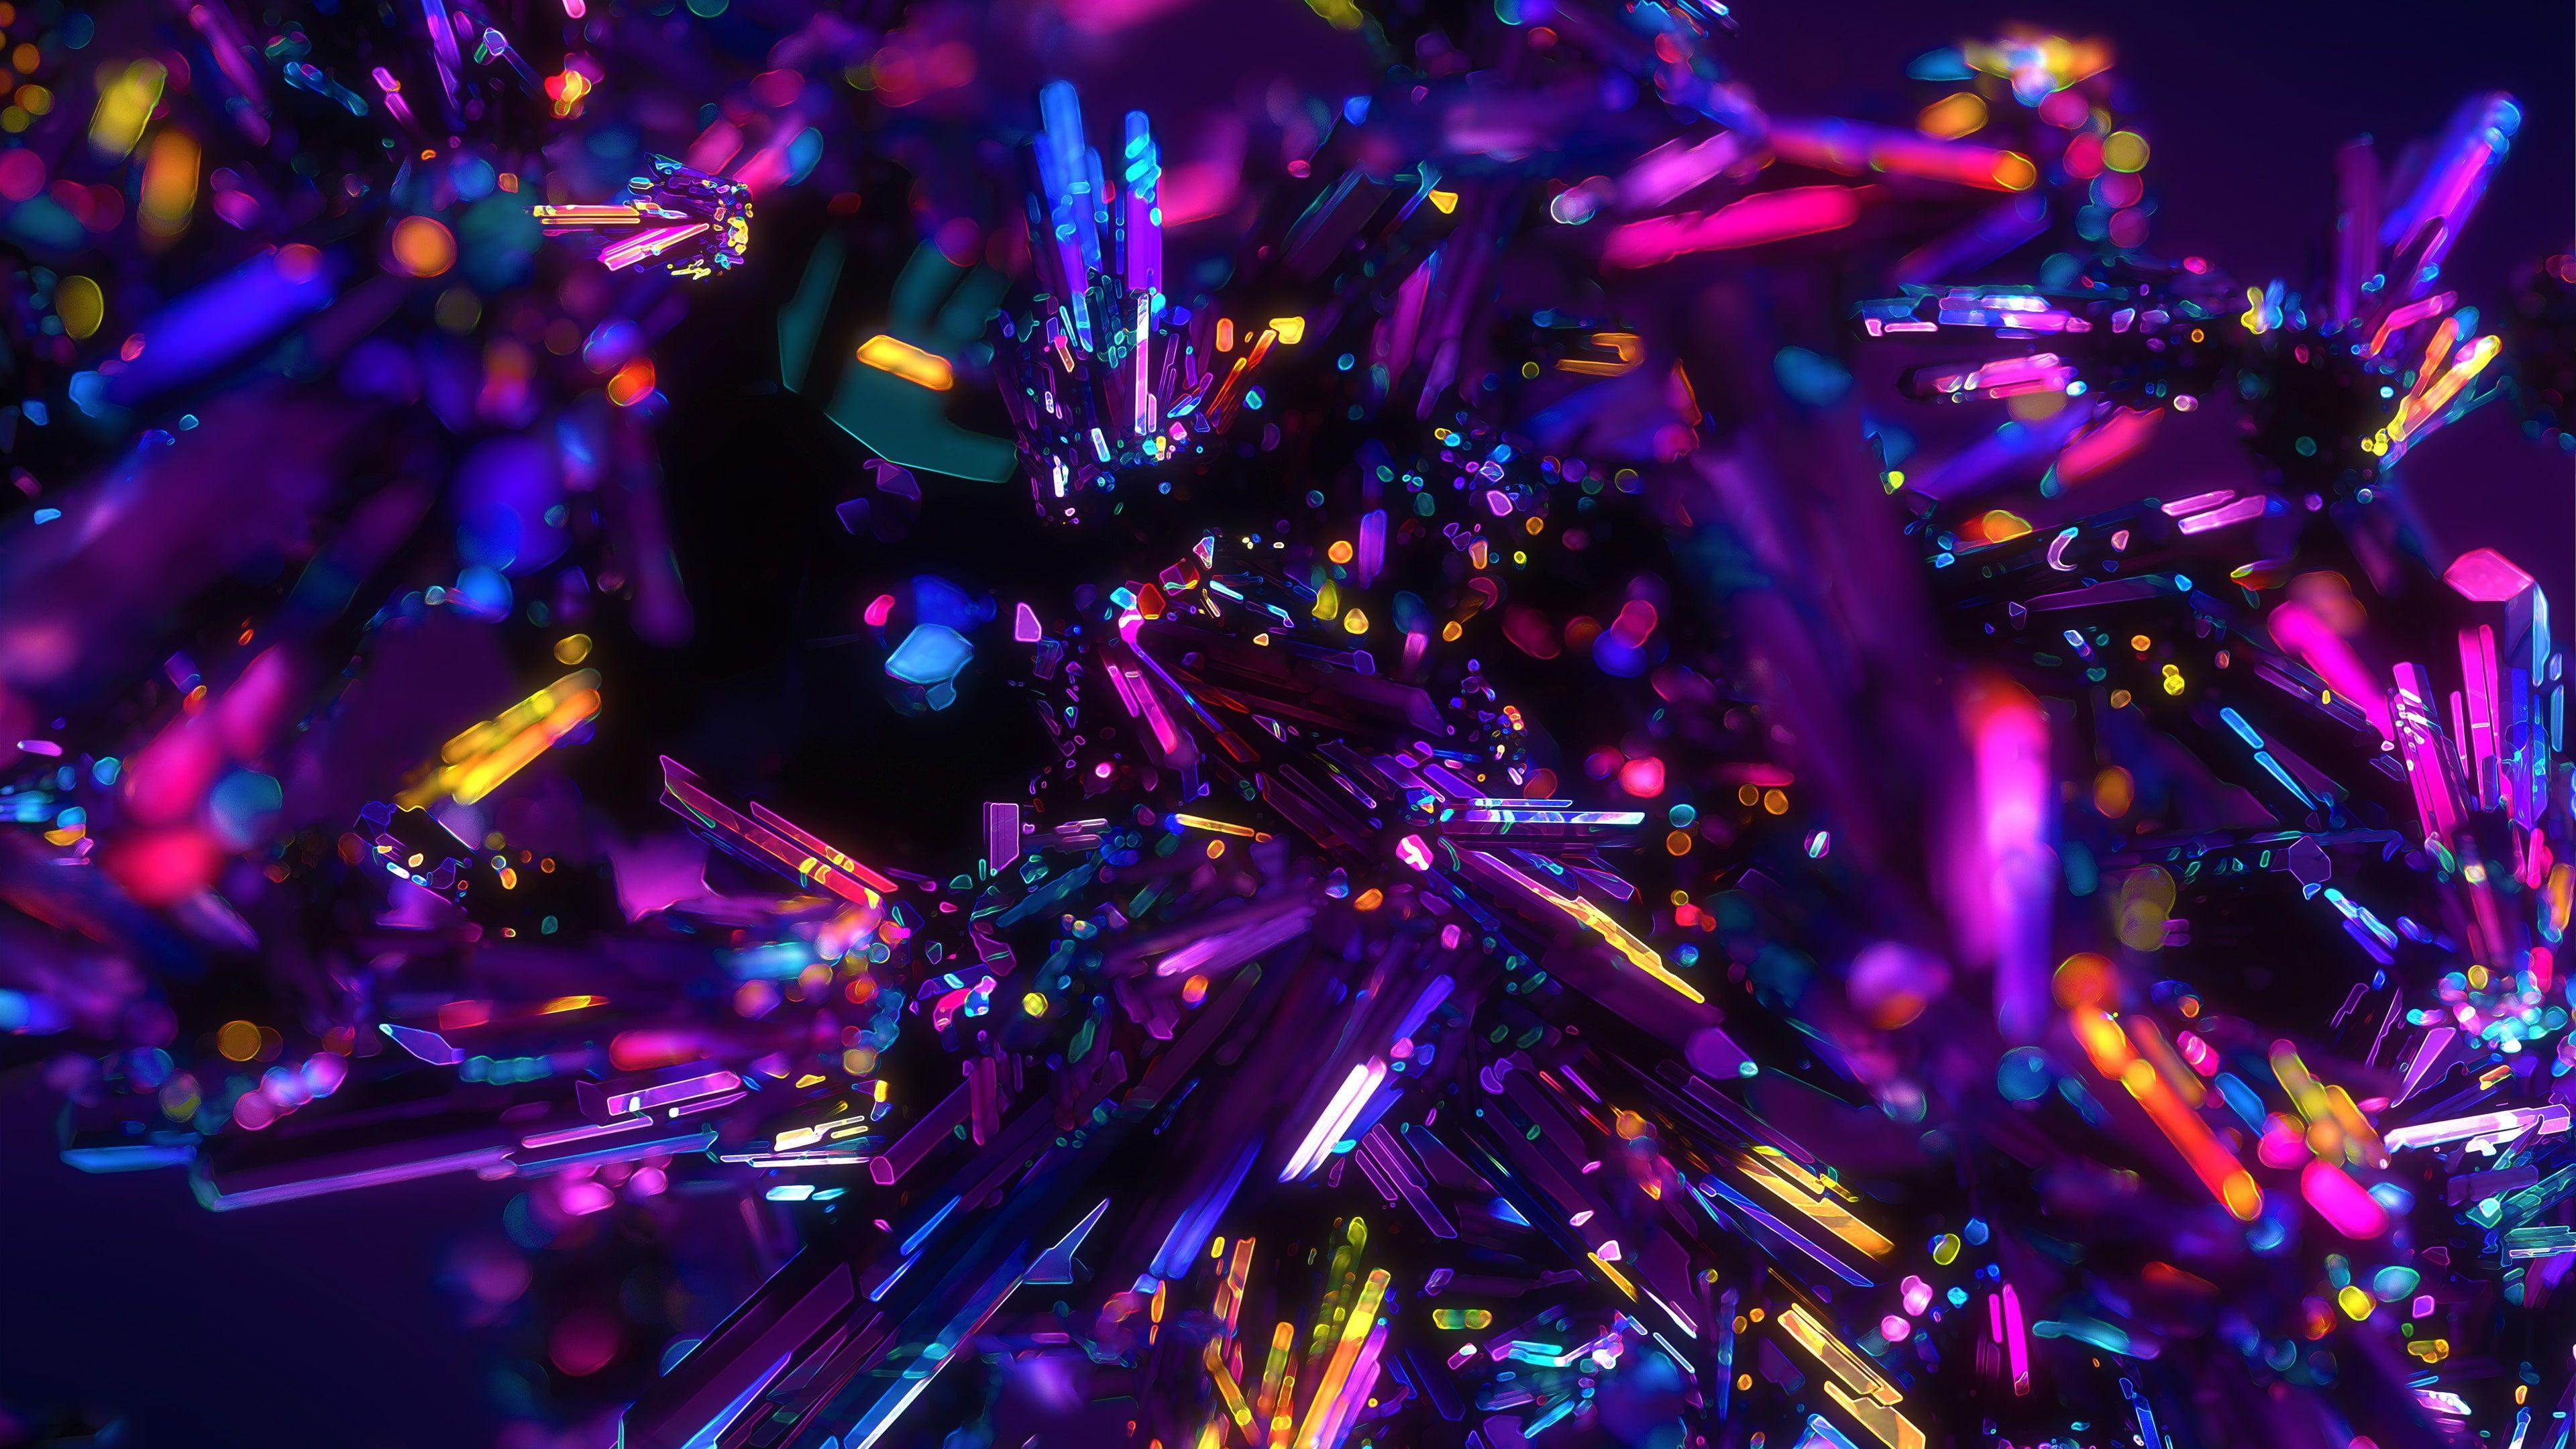 Purple Crystals Colors Cristal Colorful Crystal Glowing Glow Shining Shine 4k Wallp Anime Wallpaper Download Anime Scenery Wallpaper Neon Wallpaper